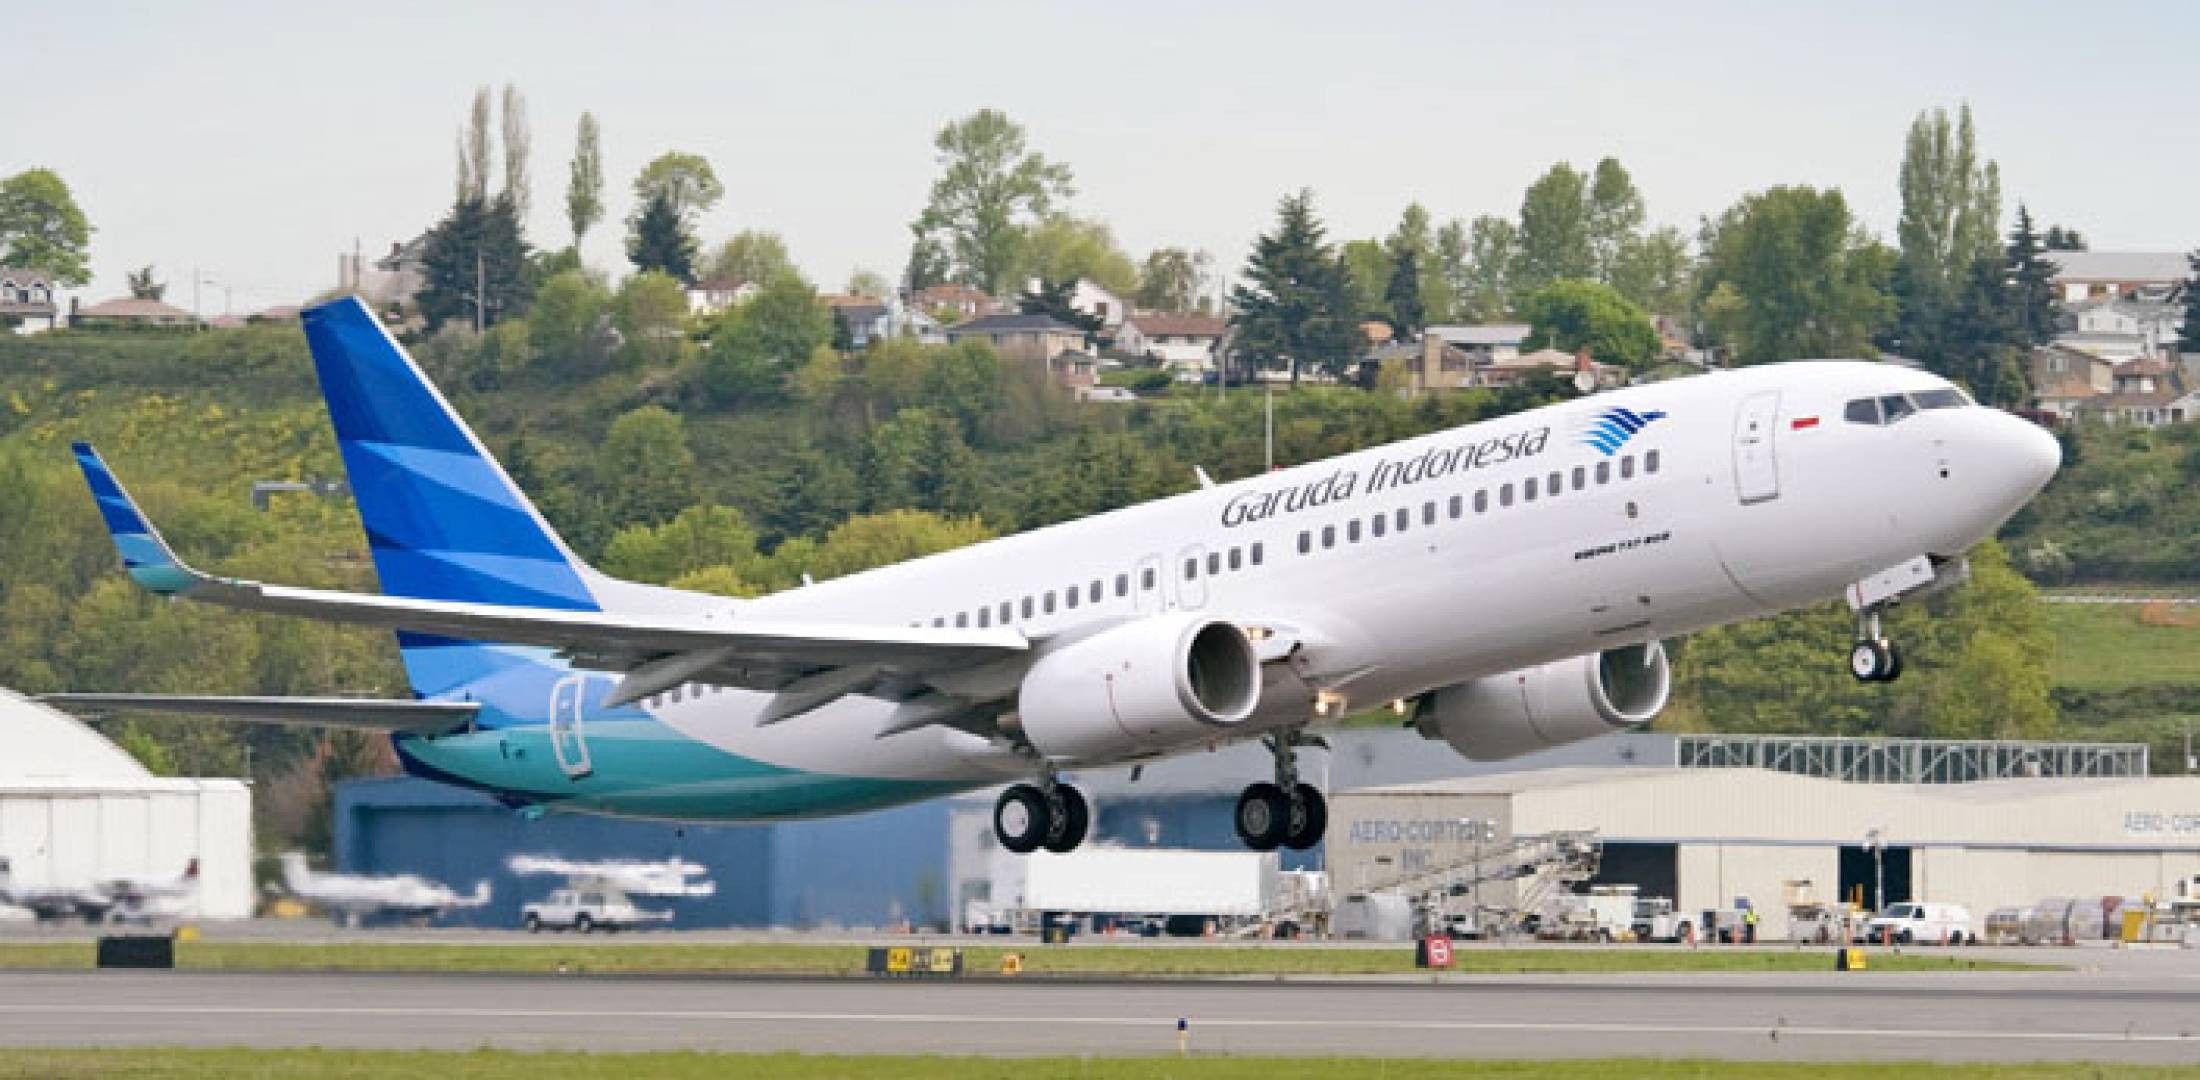 Boeing's decision to retrofit new engines on the 737 could depend as much on ...